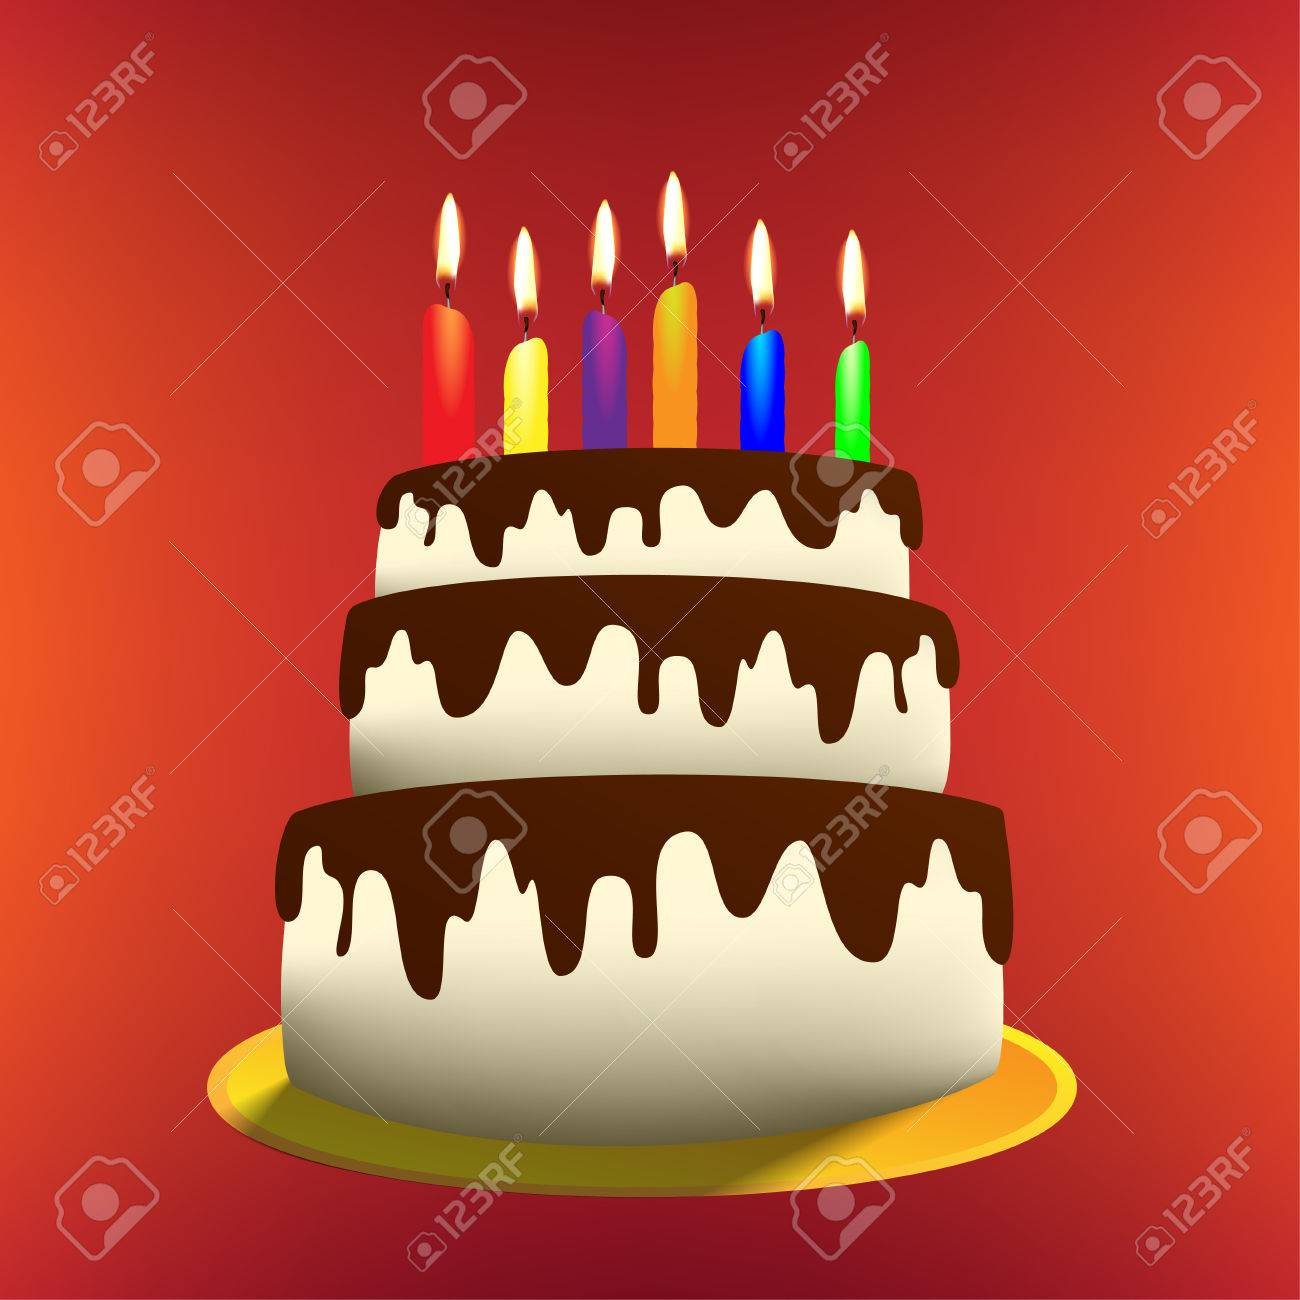 Vector Illustration Of Cartoon Birthday Cake With Candles Royalty